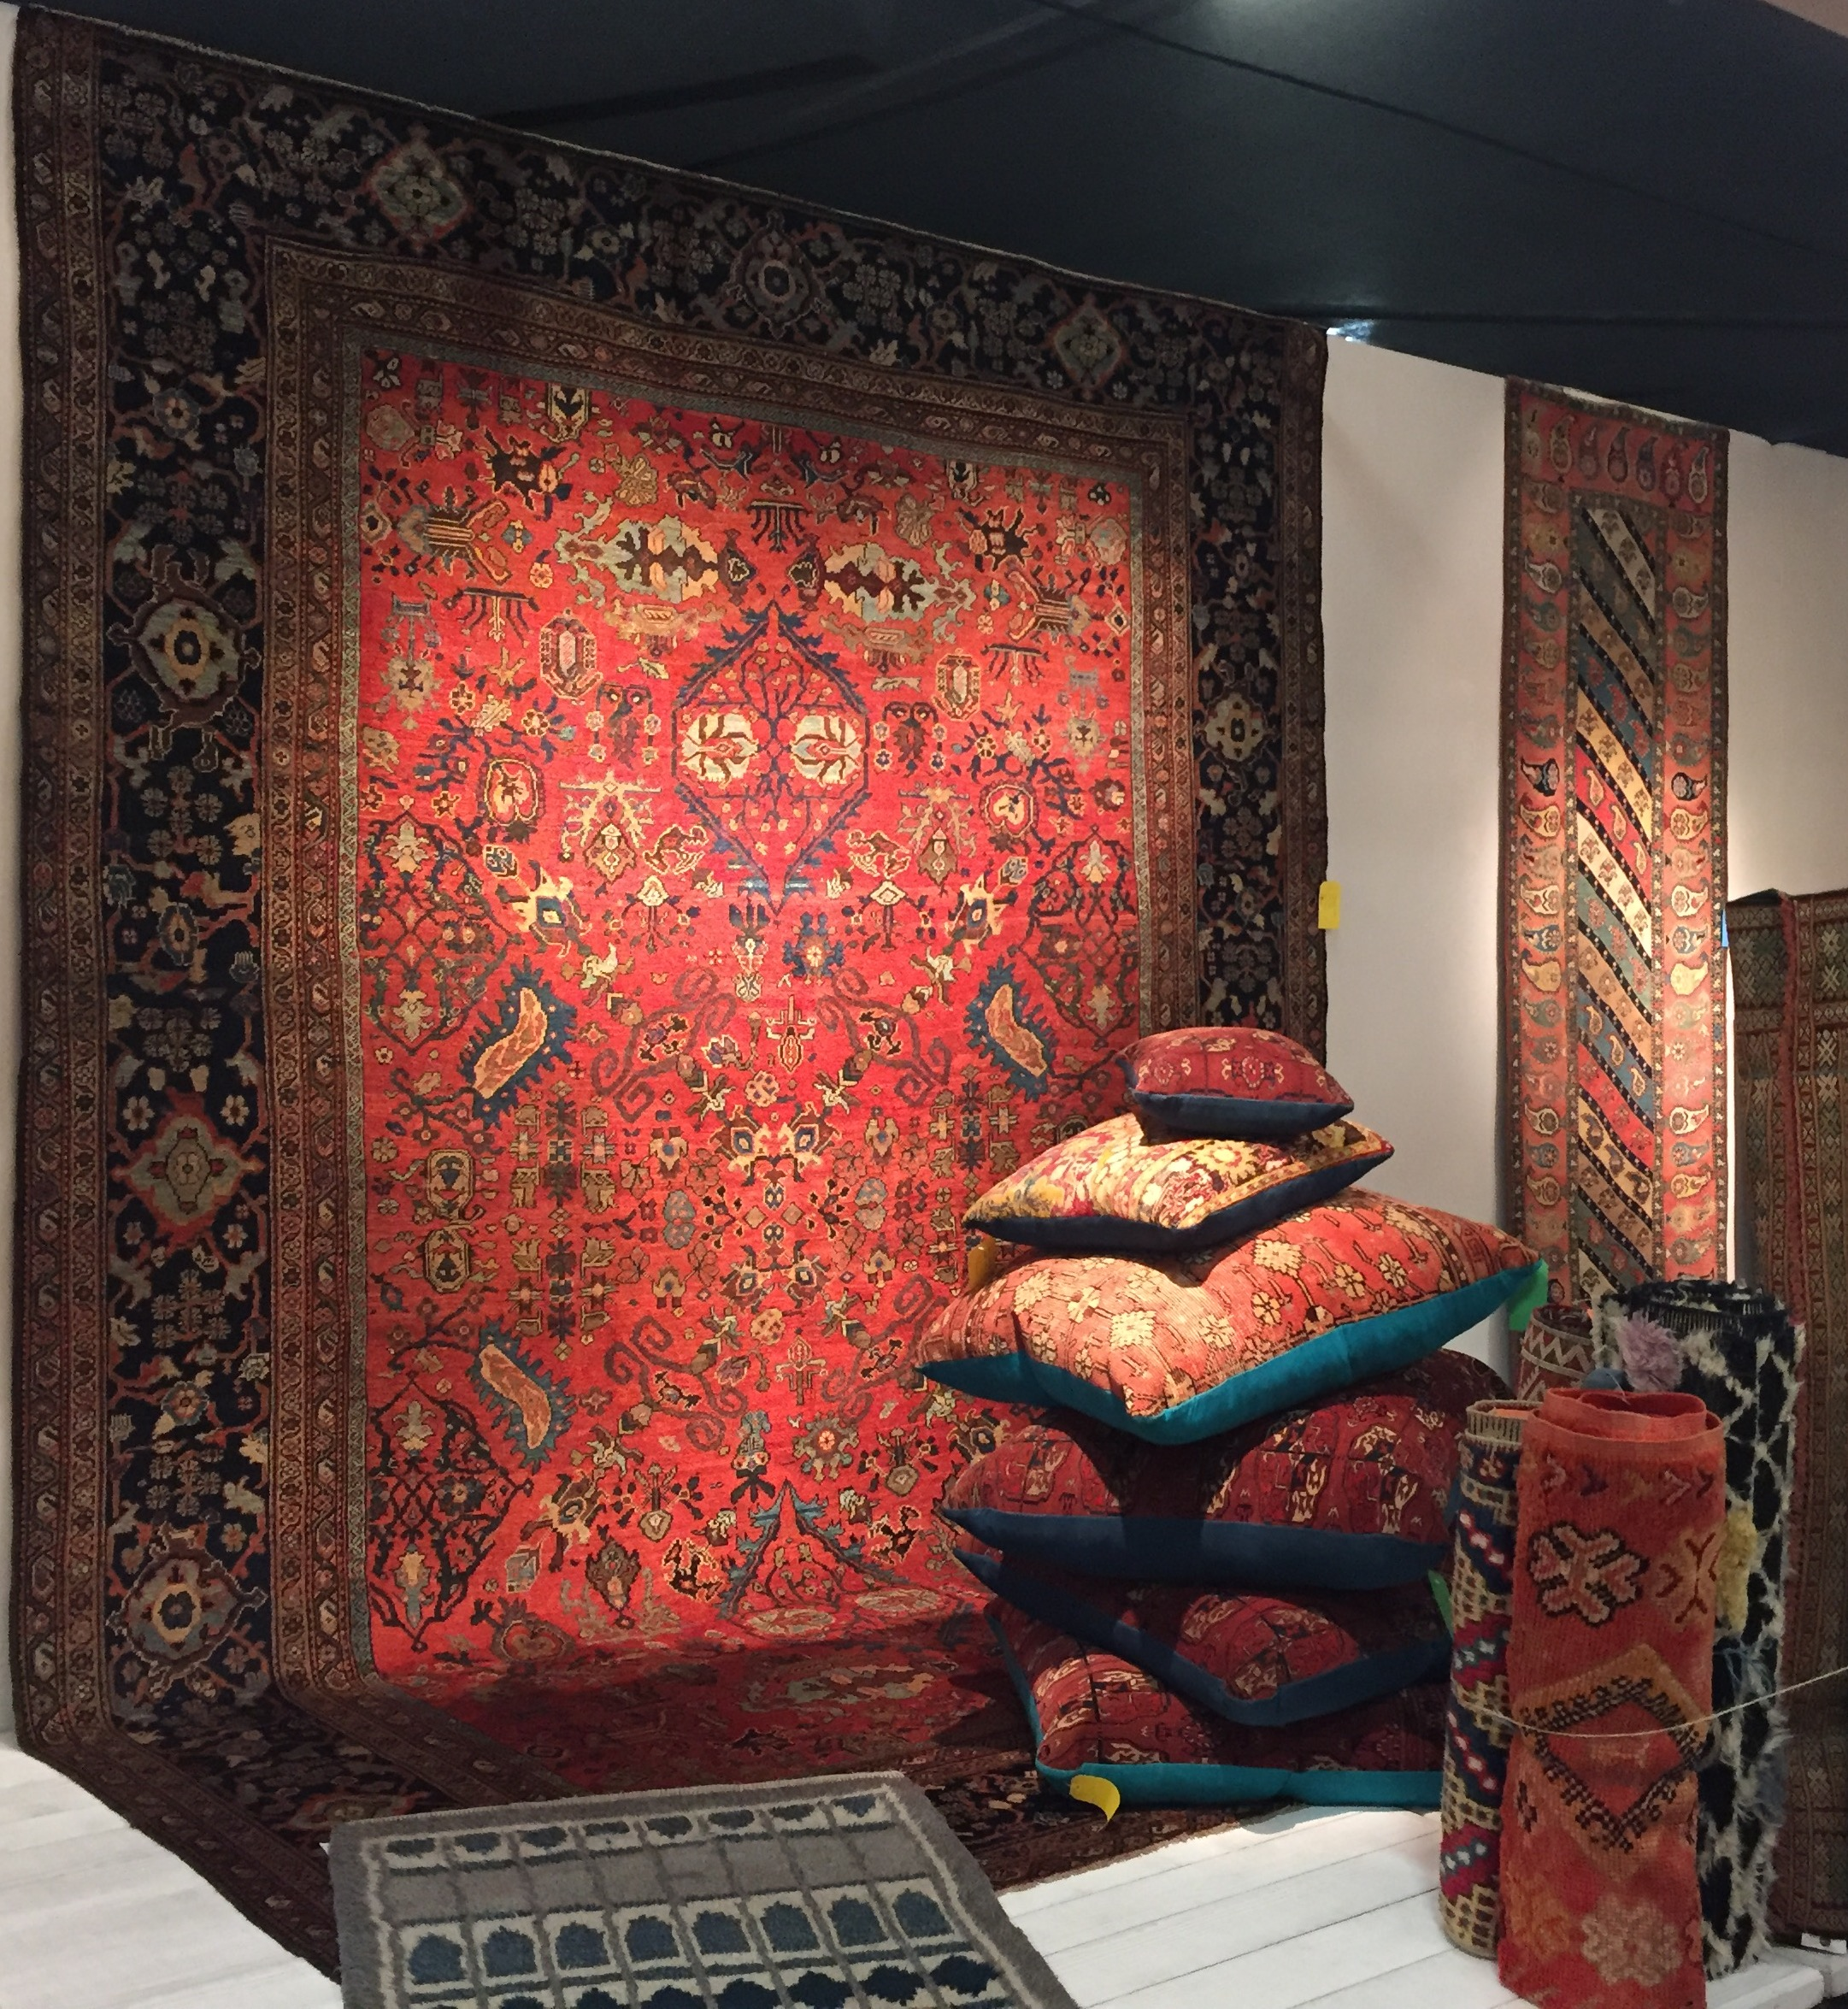 Joshua Lumley , based in Ashford, Kent, always has the most beautiful rugs in exquisite colours and patterns.